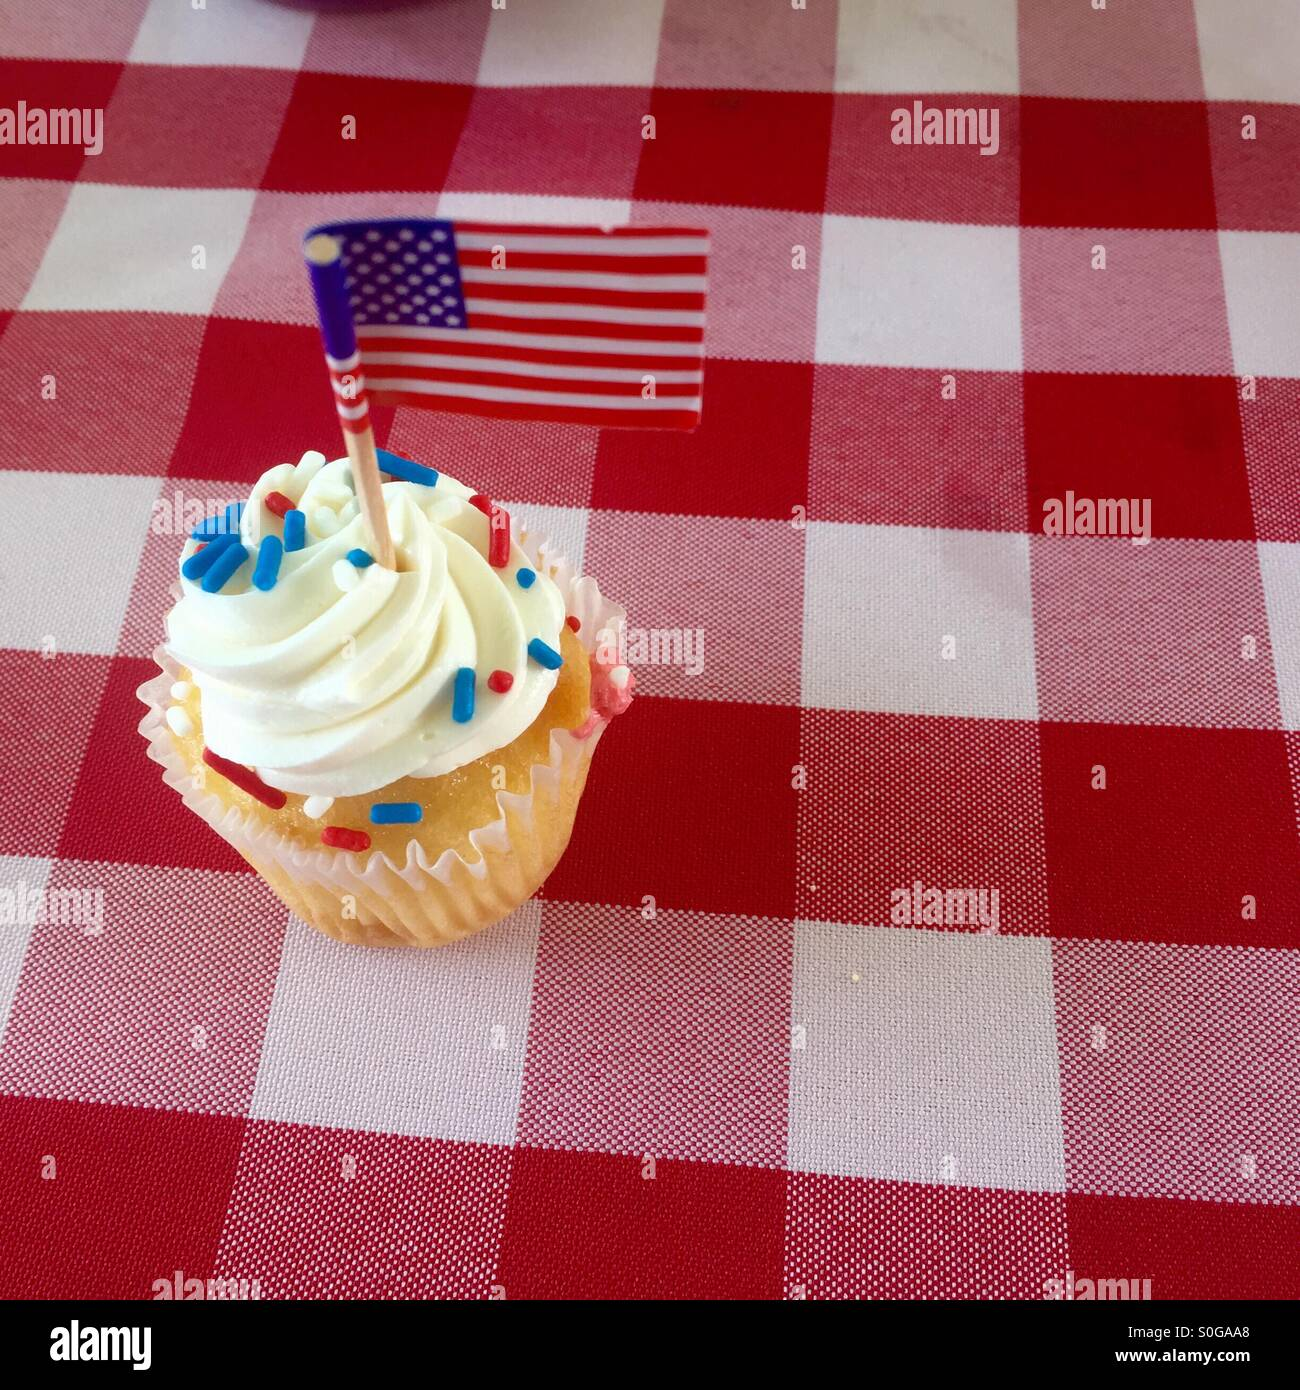 A cute white cupcake sprinkled with red white and blue sprinkles with an American flag sits on a checkered tablecloth. - Stock Image